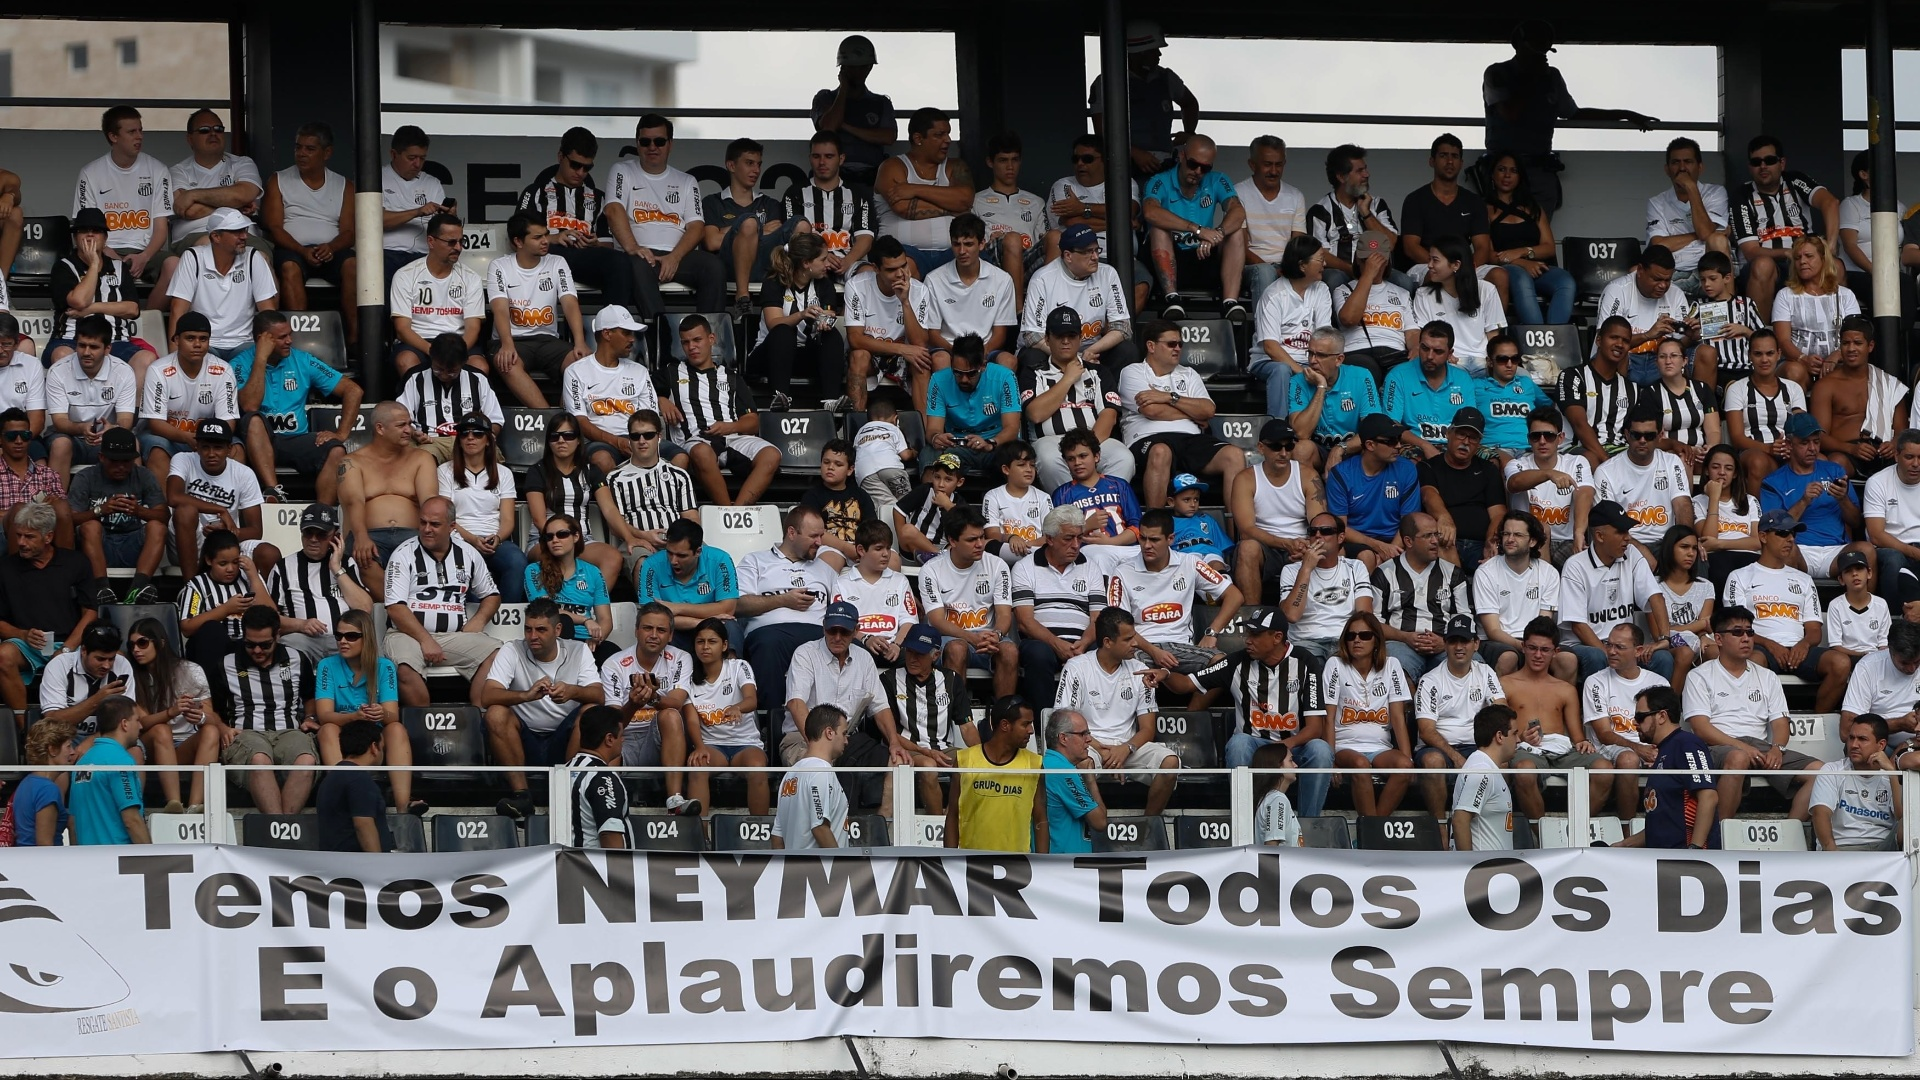 Faixa estendida na Vila valoriza Neymar aps vaias no MIneiro: 